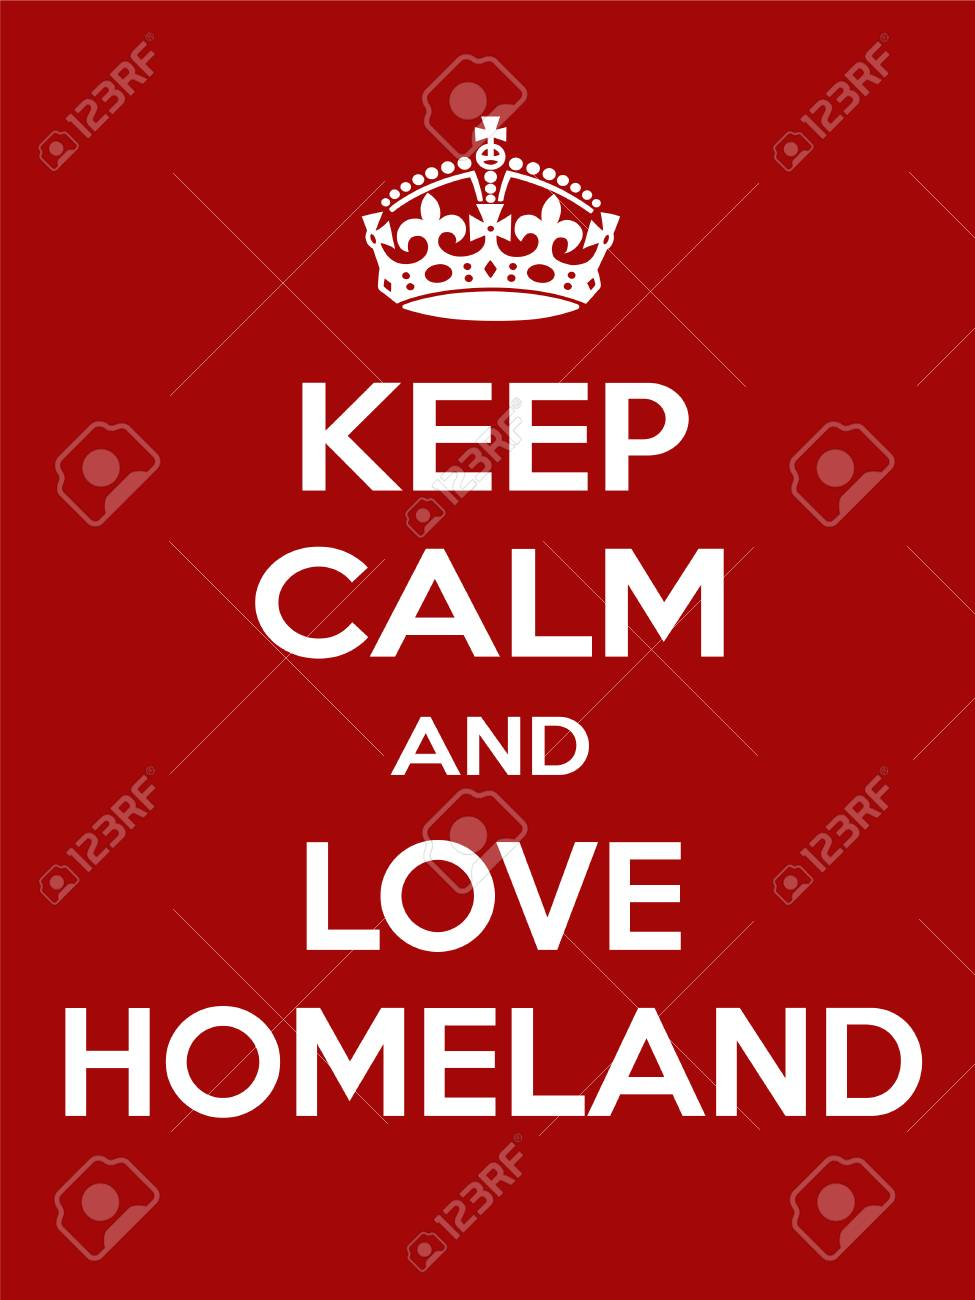 Keep Calm And Love Homeland. Vertical Rectangular Red And White ...